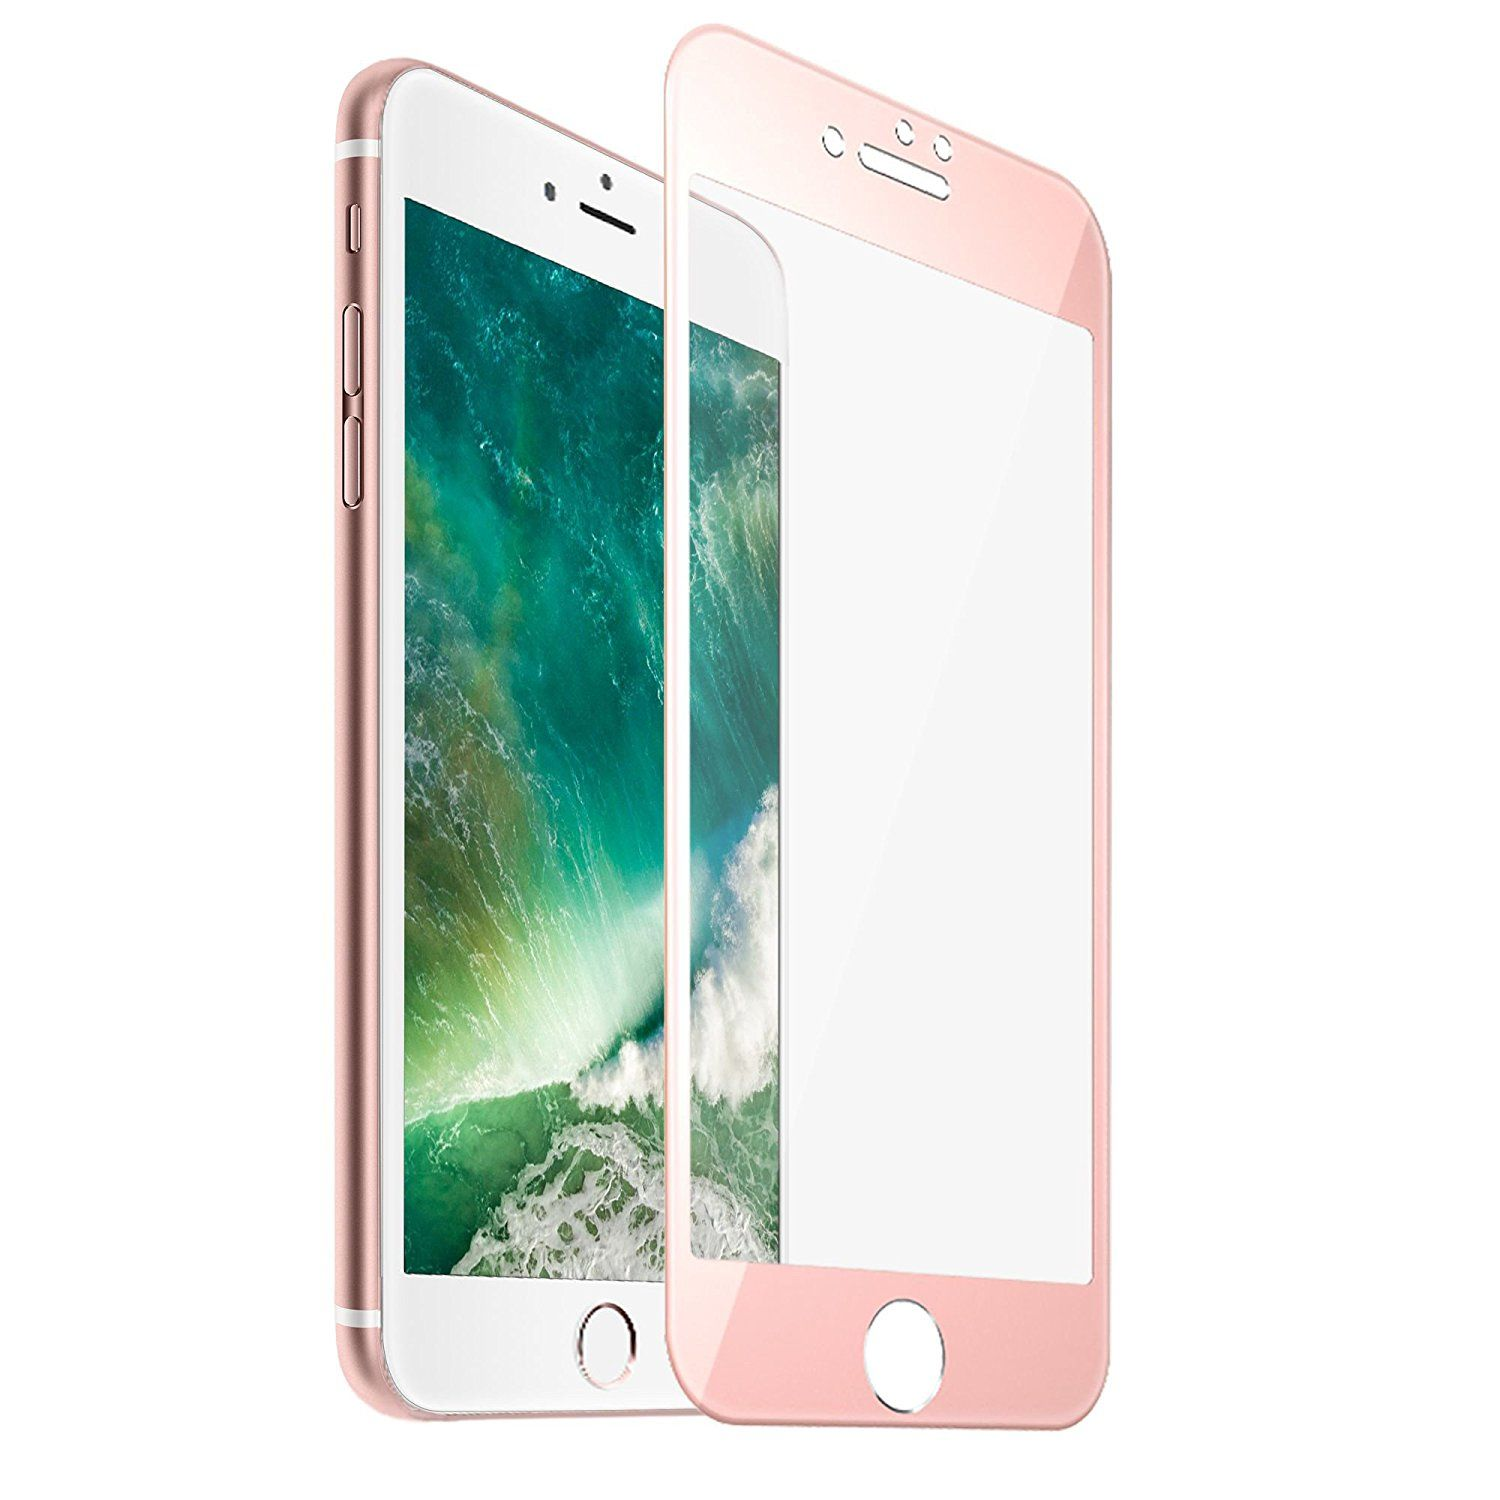 F color Rose Gold Apple iPhone 7 8 Screen Protector Tempered Glass with Rose Gold Alloy Metal Frame Full iPhone 8 7 Screen Cover HD Clear 3D Round Edge